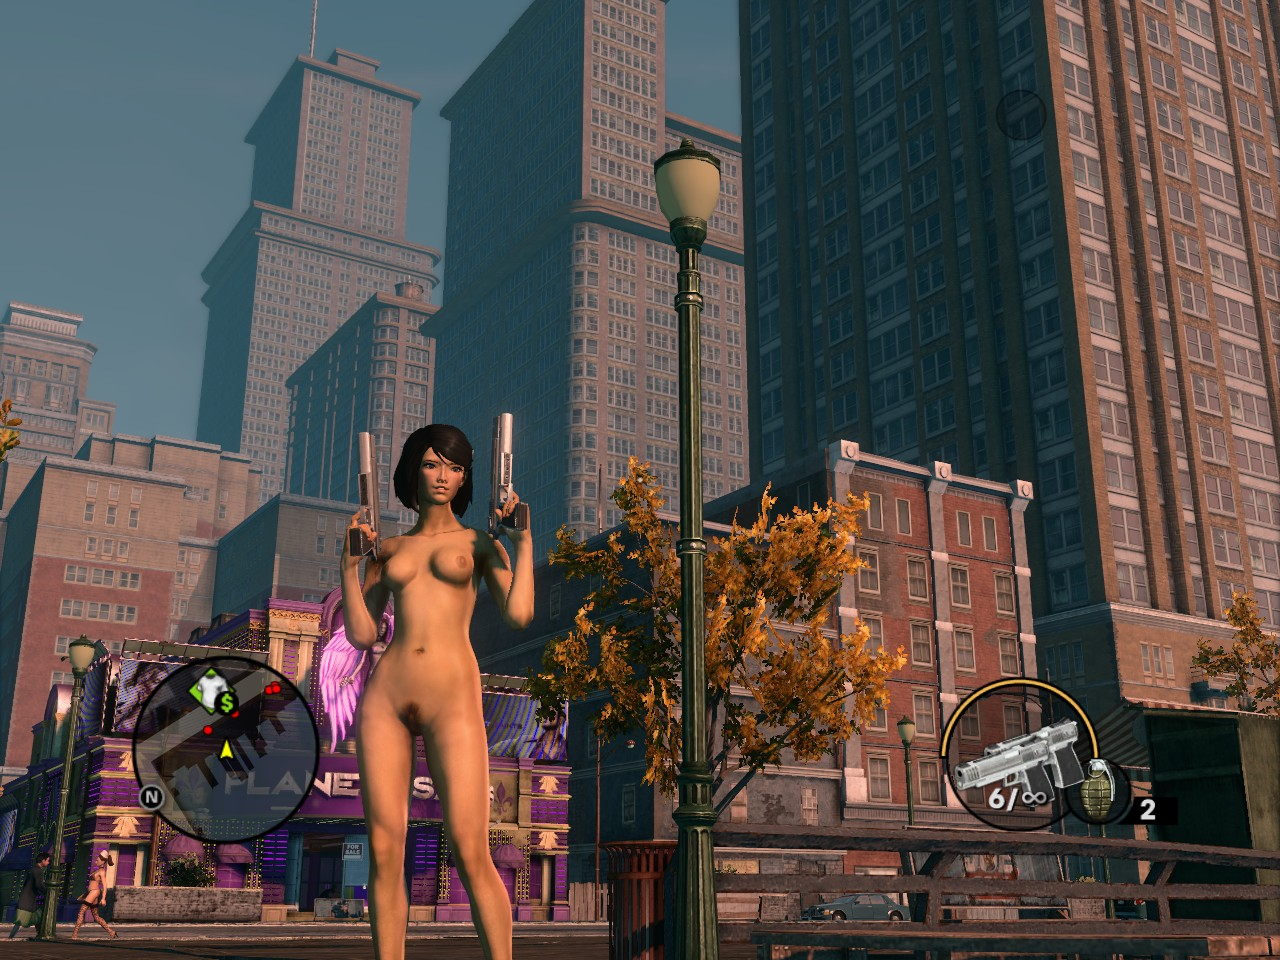 Saint s row 4 nude patch naked photo